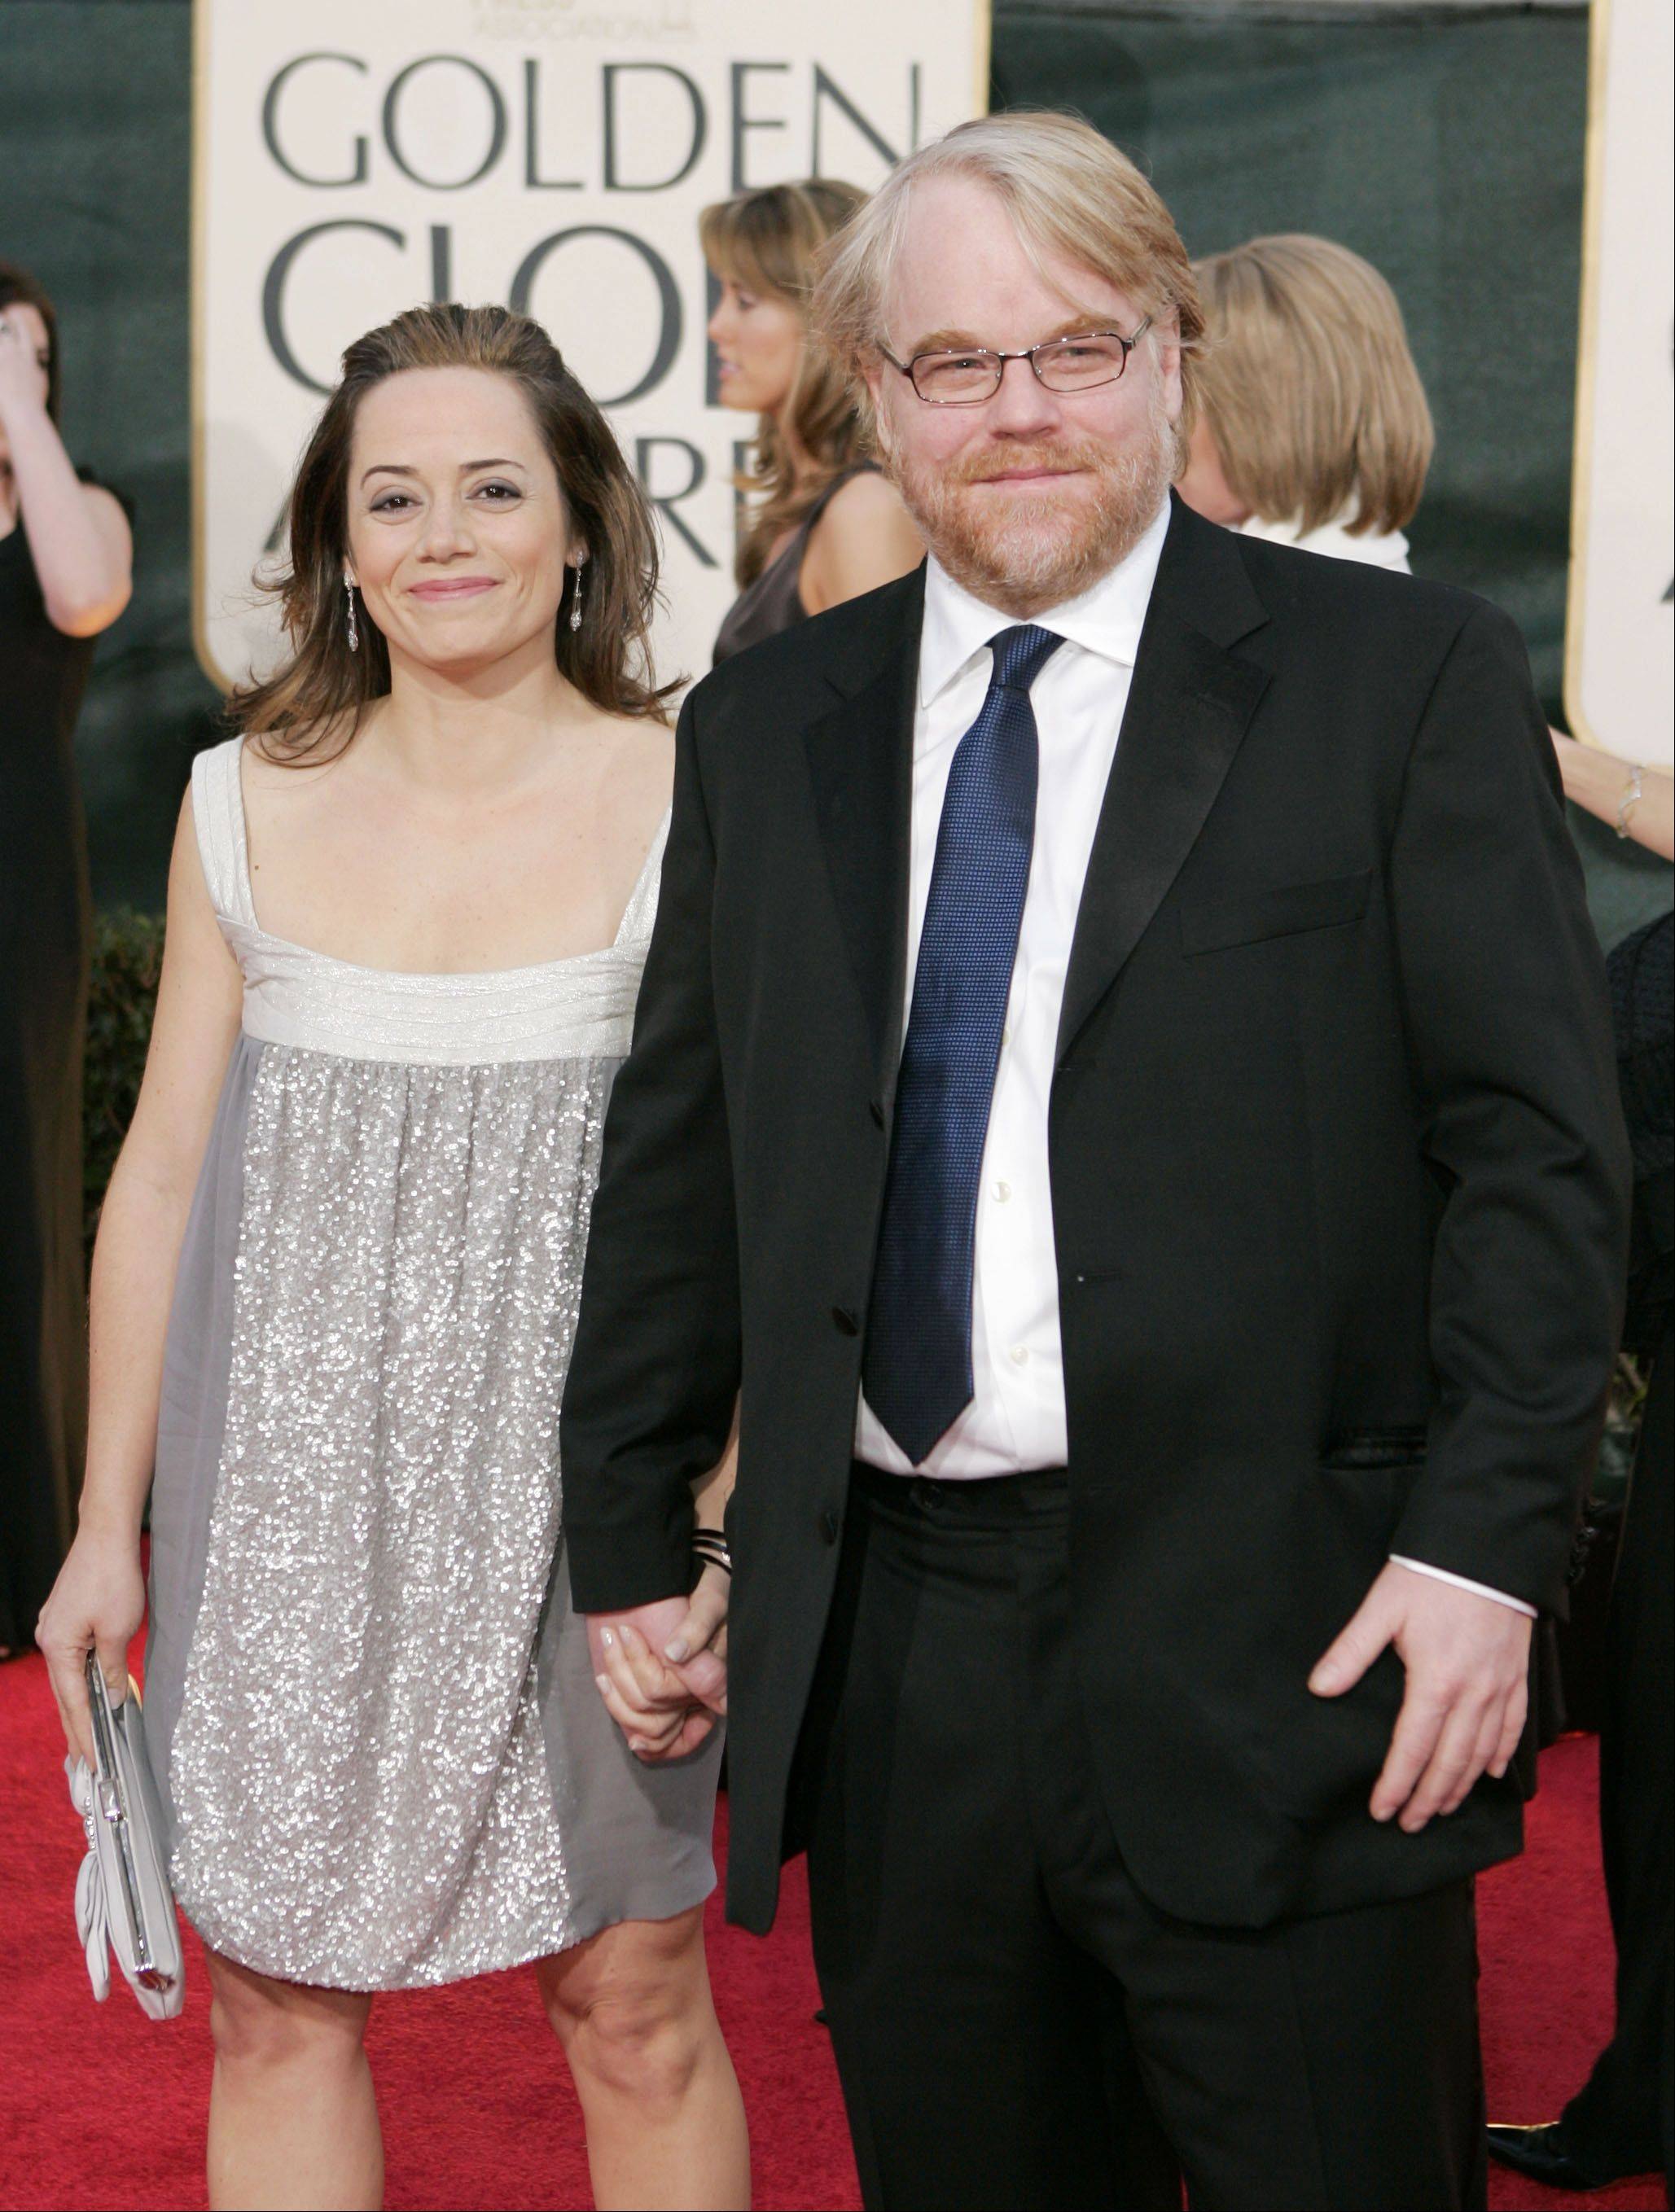 Philip Seymour Hoffman arrives with wife Mimi O'Donnell for the 63rd Annual Golden Globe Awards on Monday, Jan. 16, 2006, in Beverly Hills, Calif.